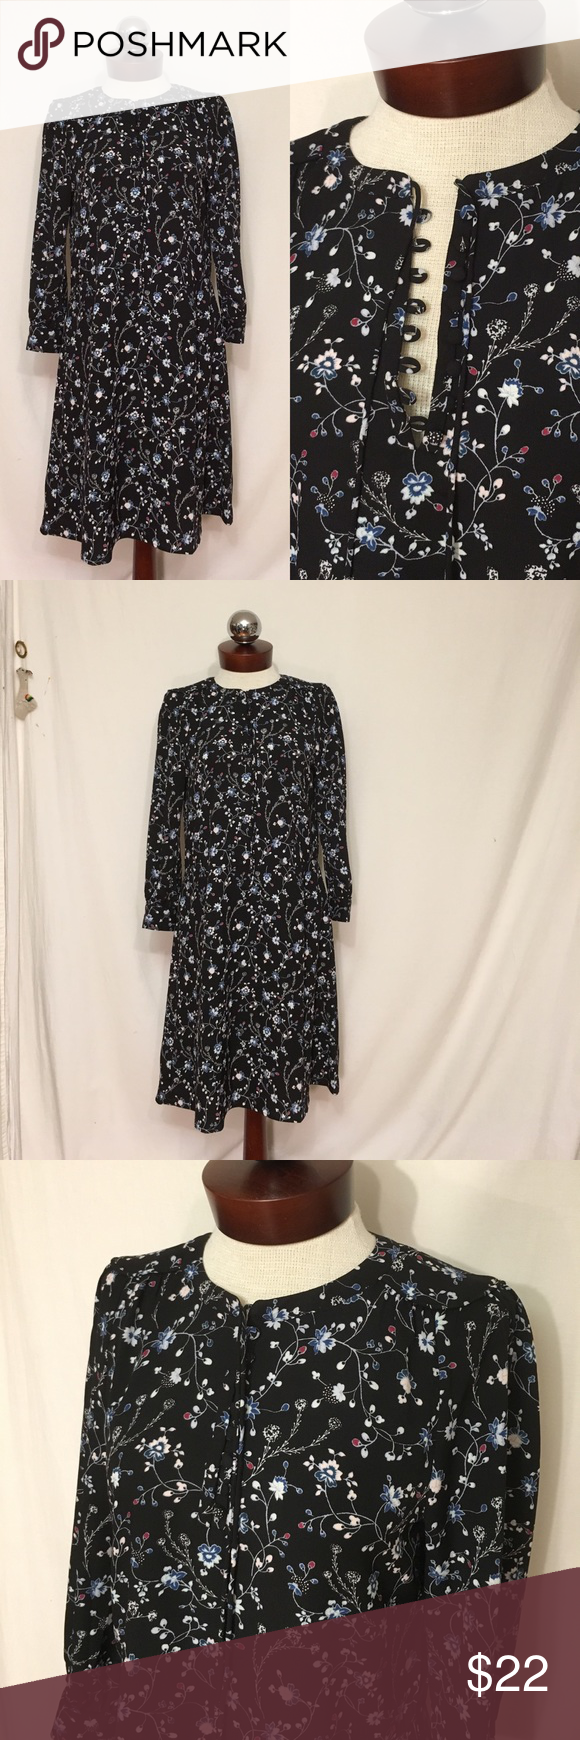 LOFT Floral print peasant dress Excellent! Buttons at the neck, ties. Unlined. Polyester. Three-quarter length sleeves with button cuffs.  bust 38 waist 35 hip 46 Length 37 LOFT Dresses Midi